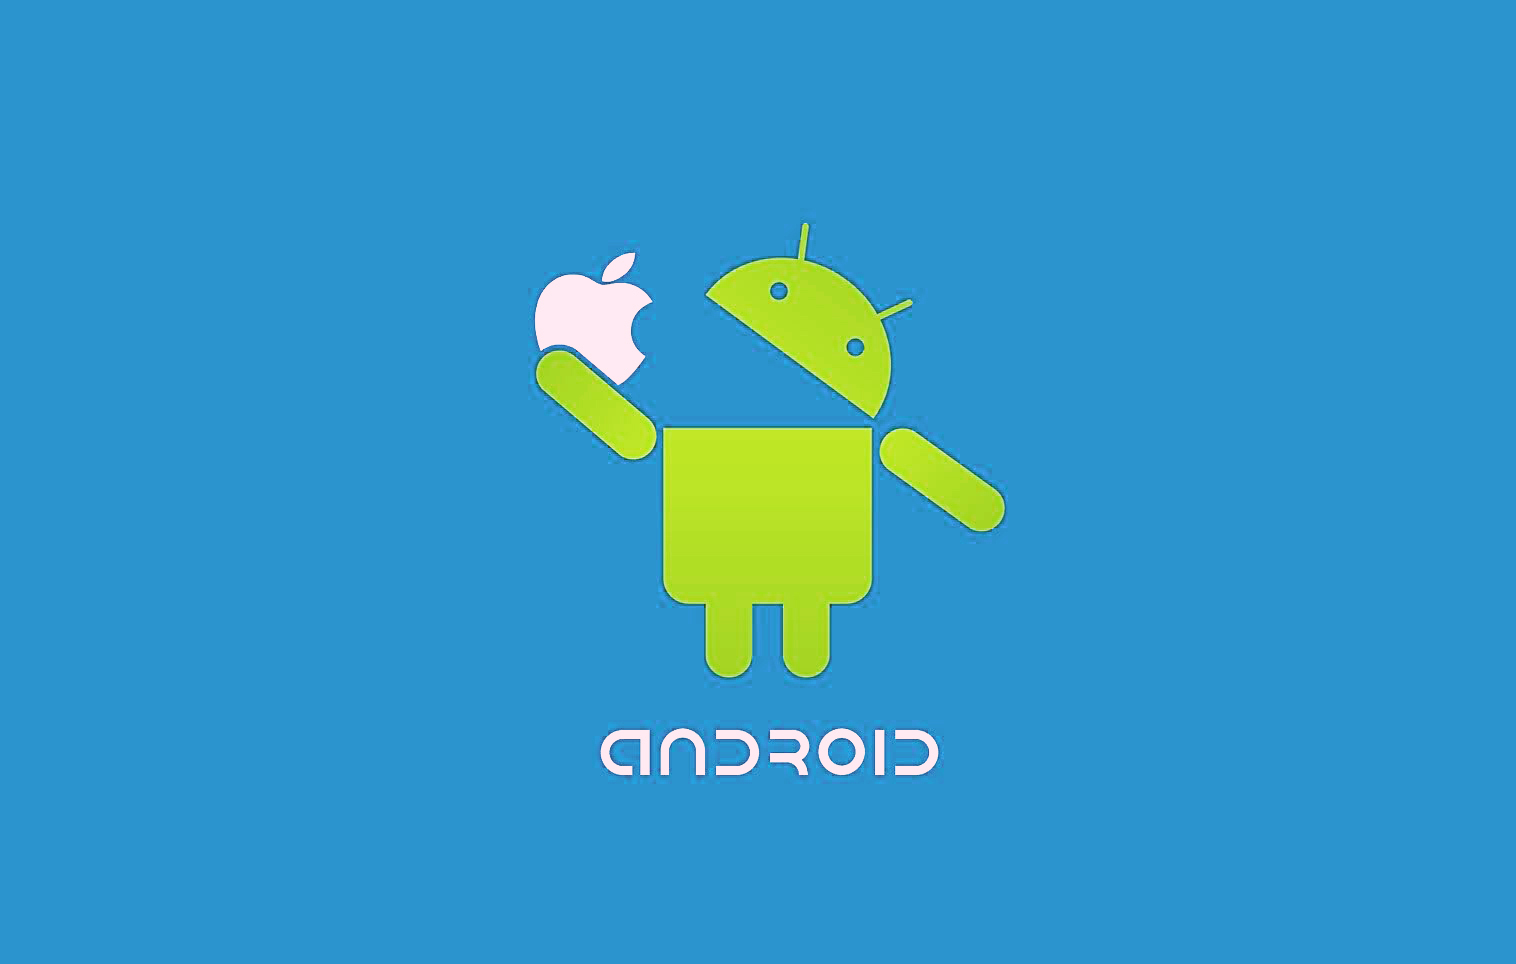 Android-Robot-Eat-Apple-Wallpaper-HD